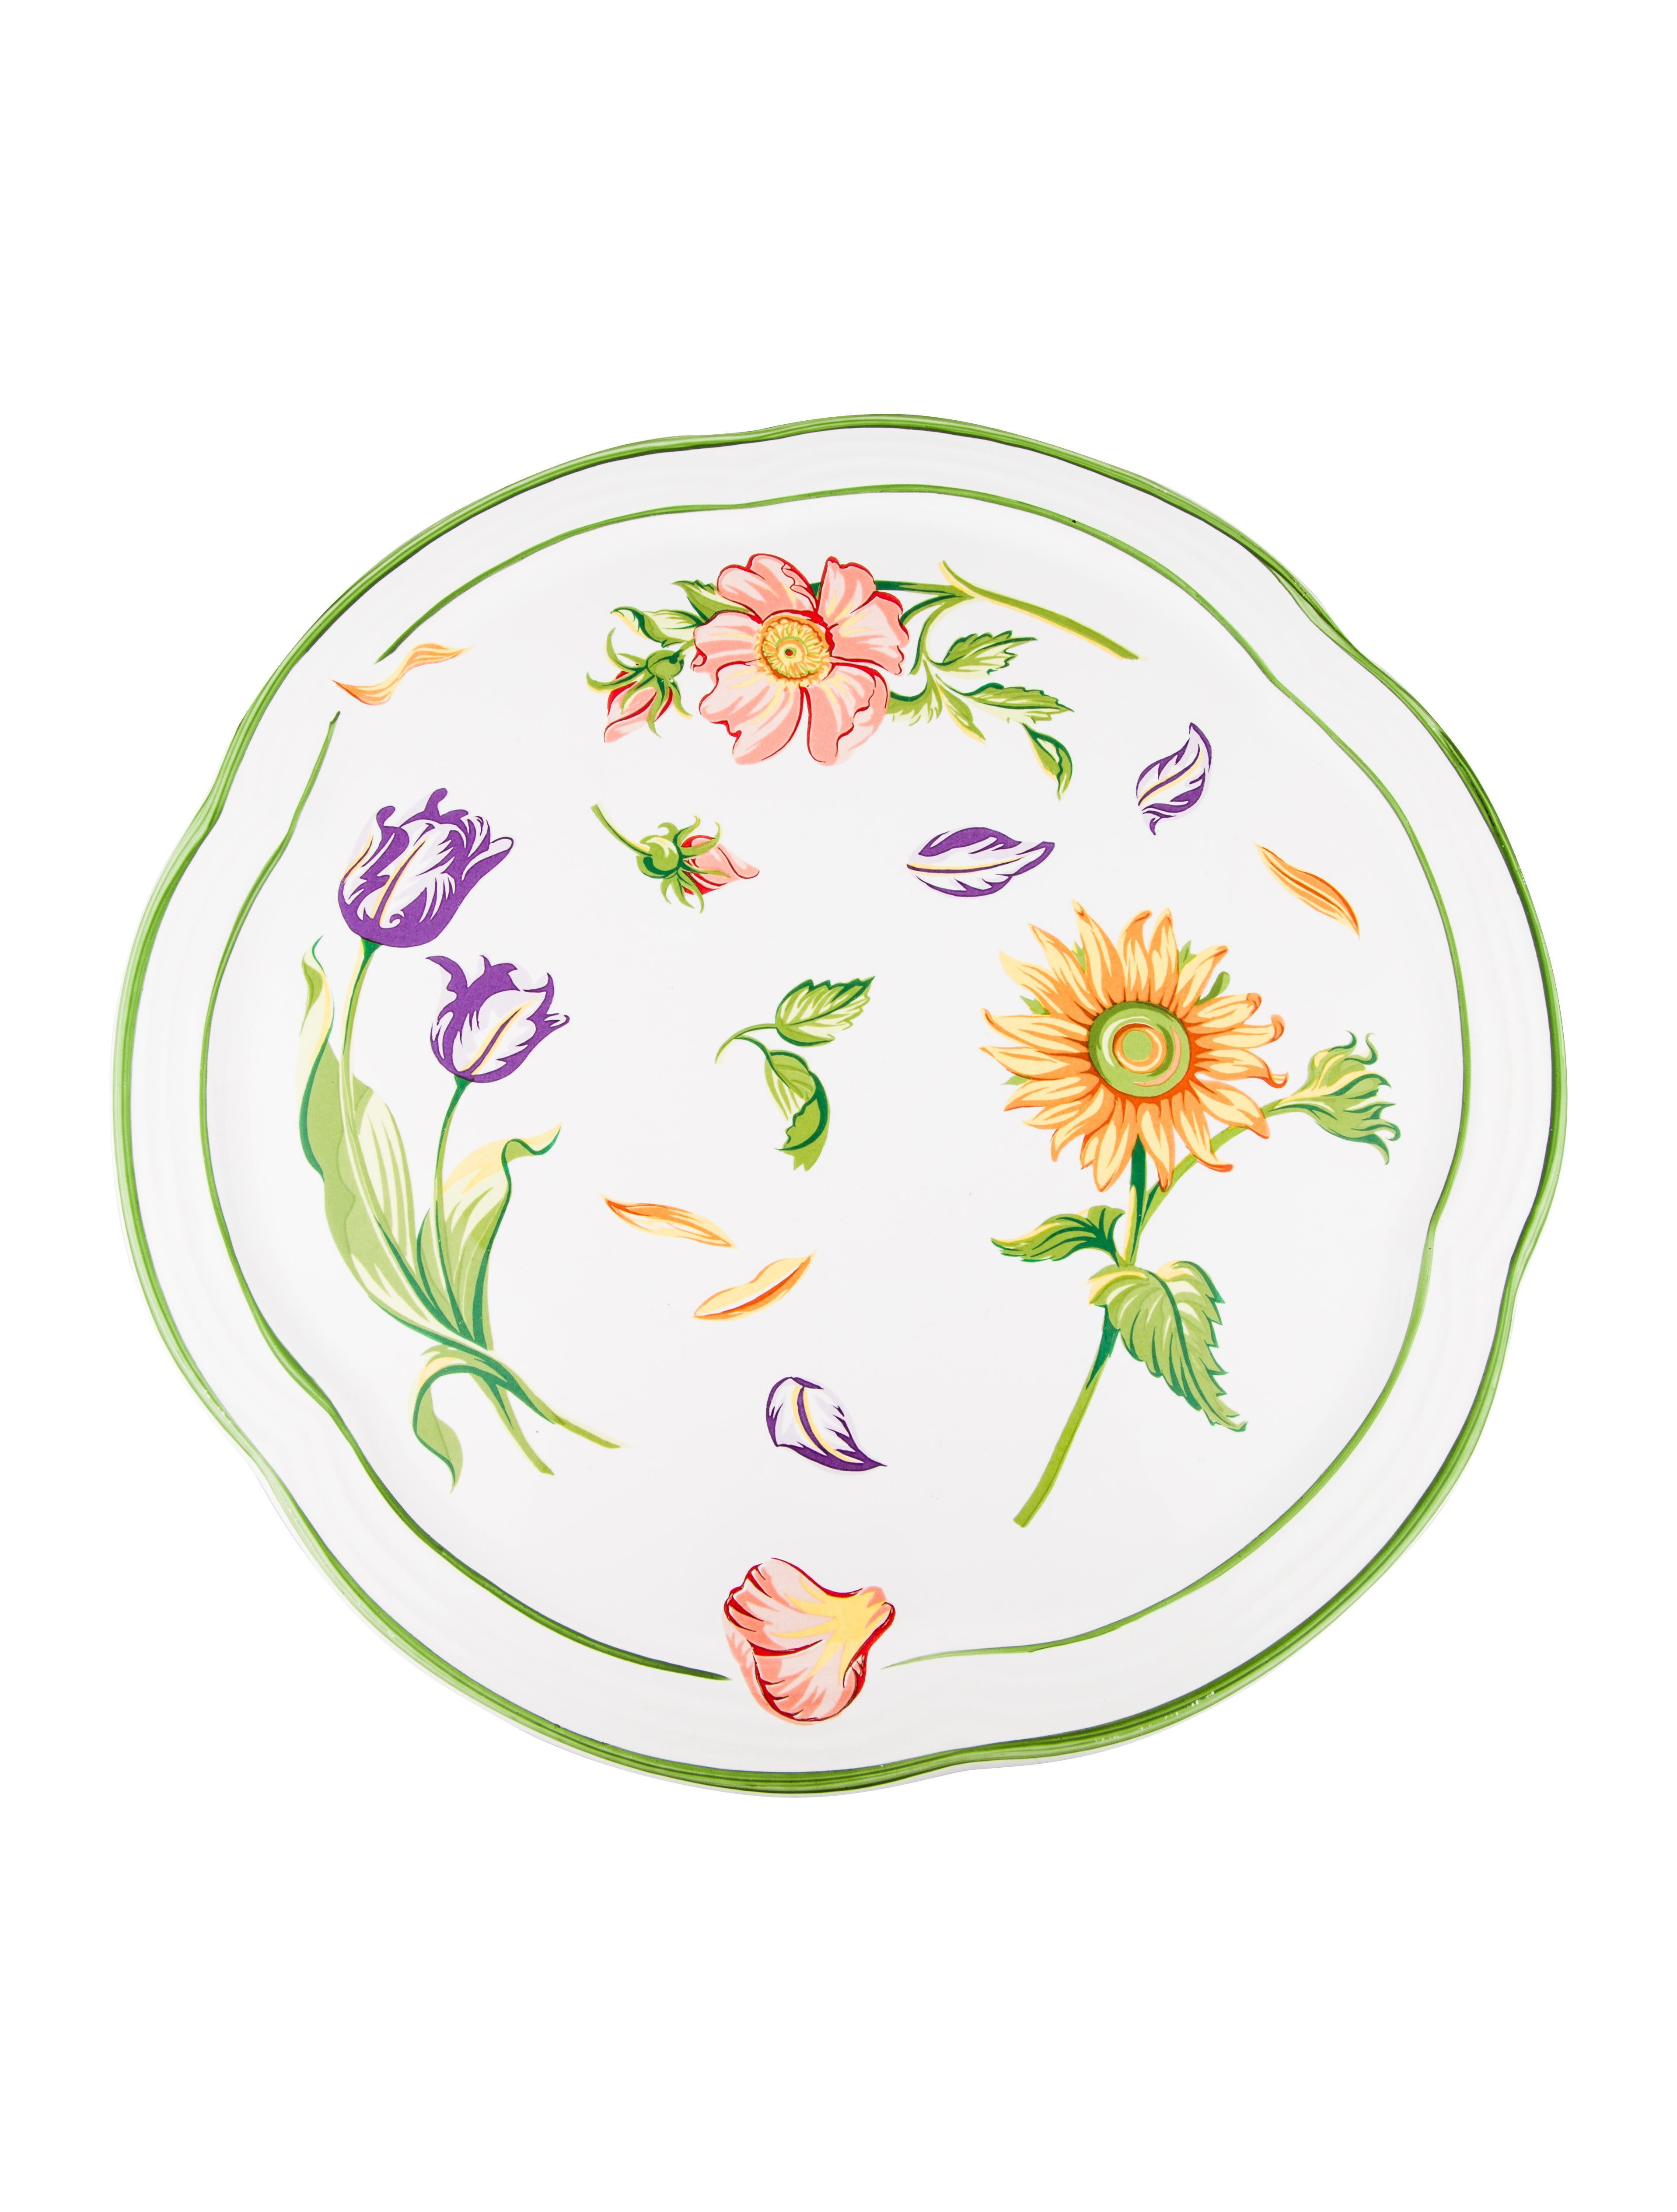 Tiffany Petals Cake Plate  sc 1 st  The RealReal & Tiffany \u0026 Co. Tiffany Petals Cake Plate - Tabletop And Kitchen ...